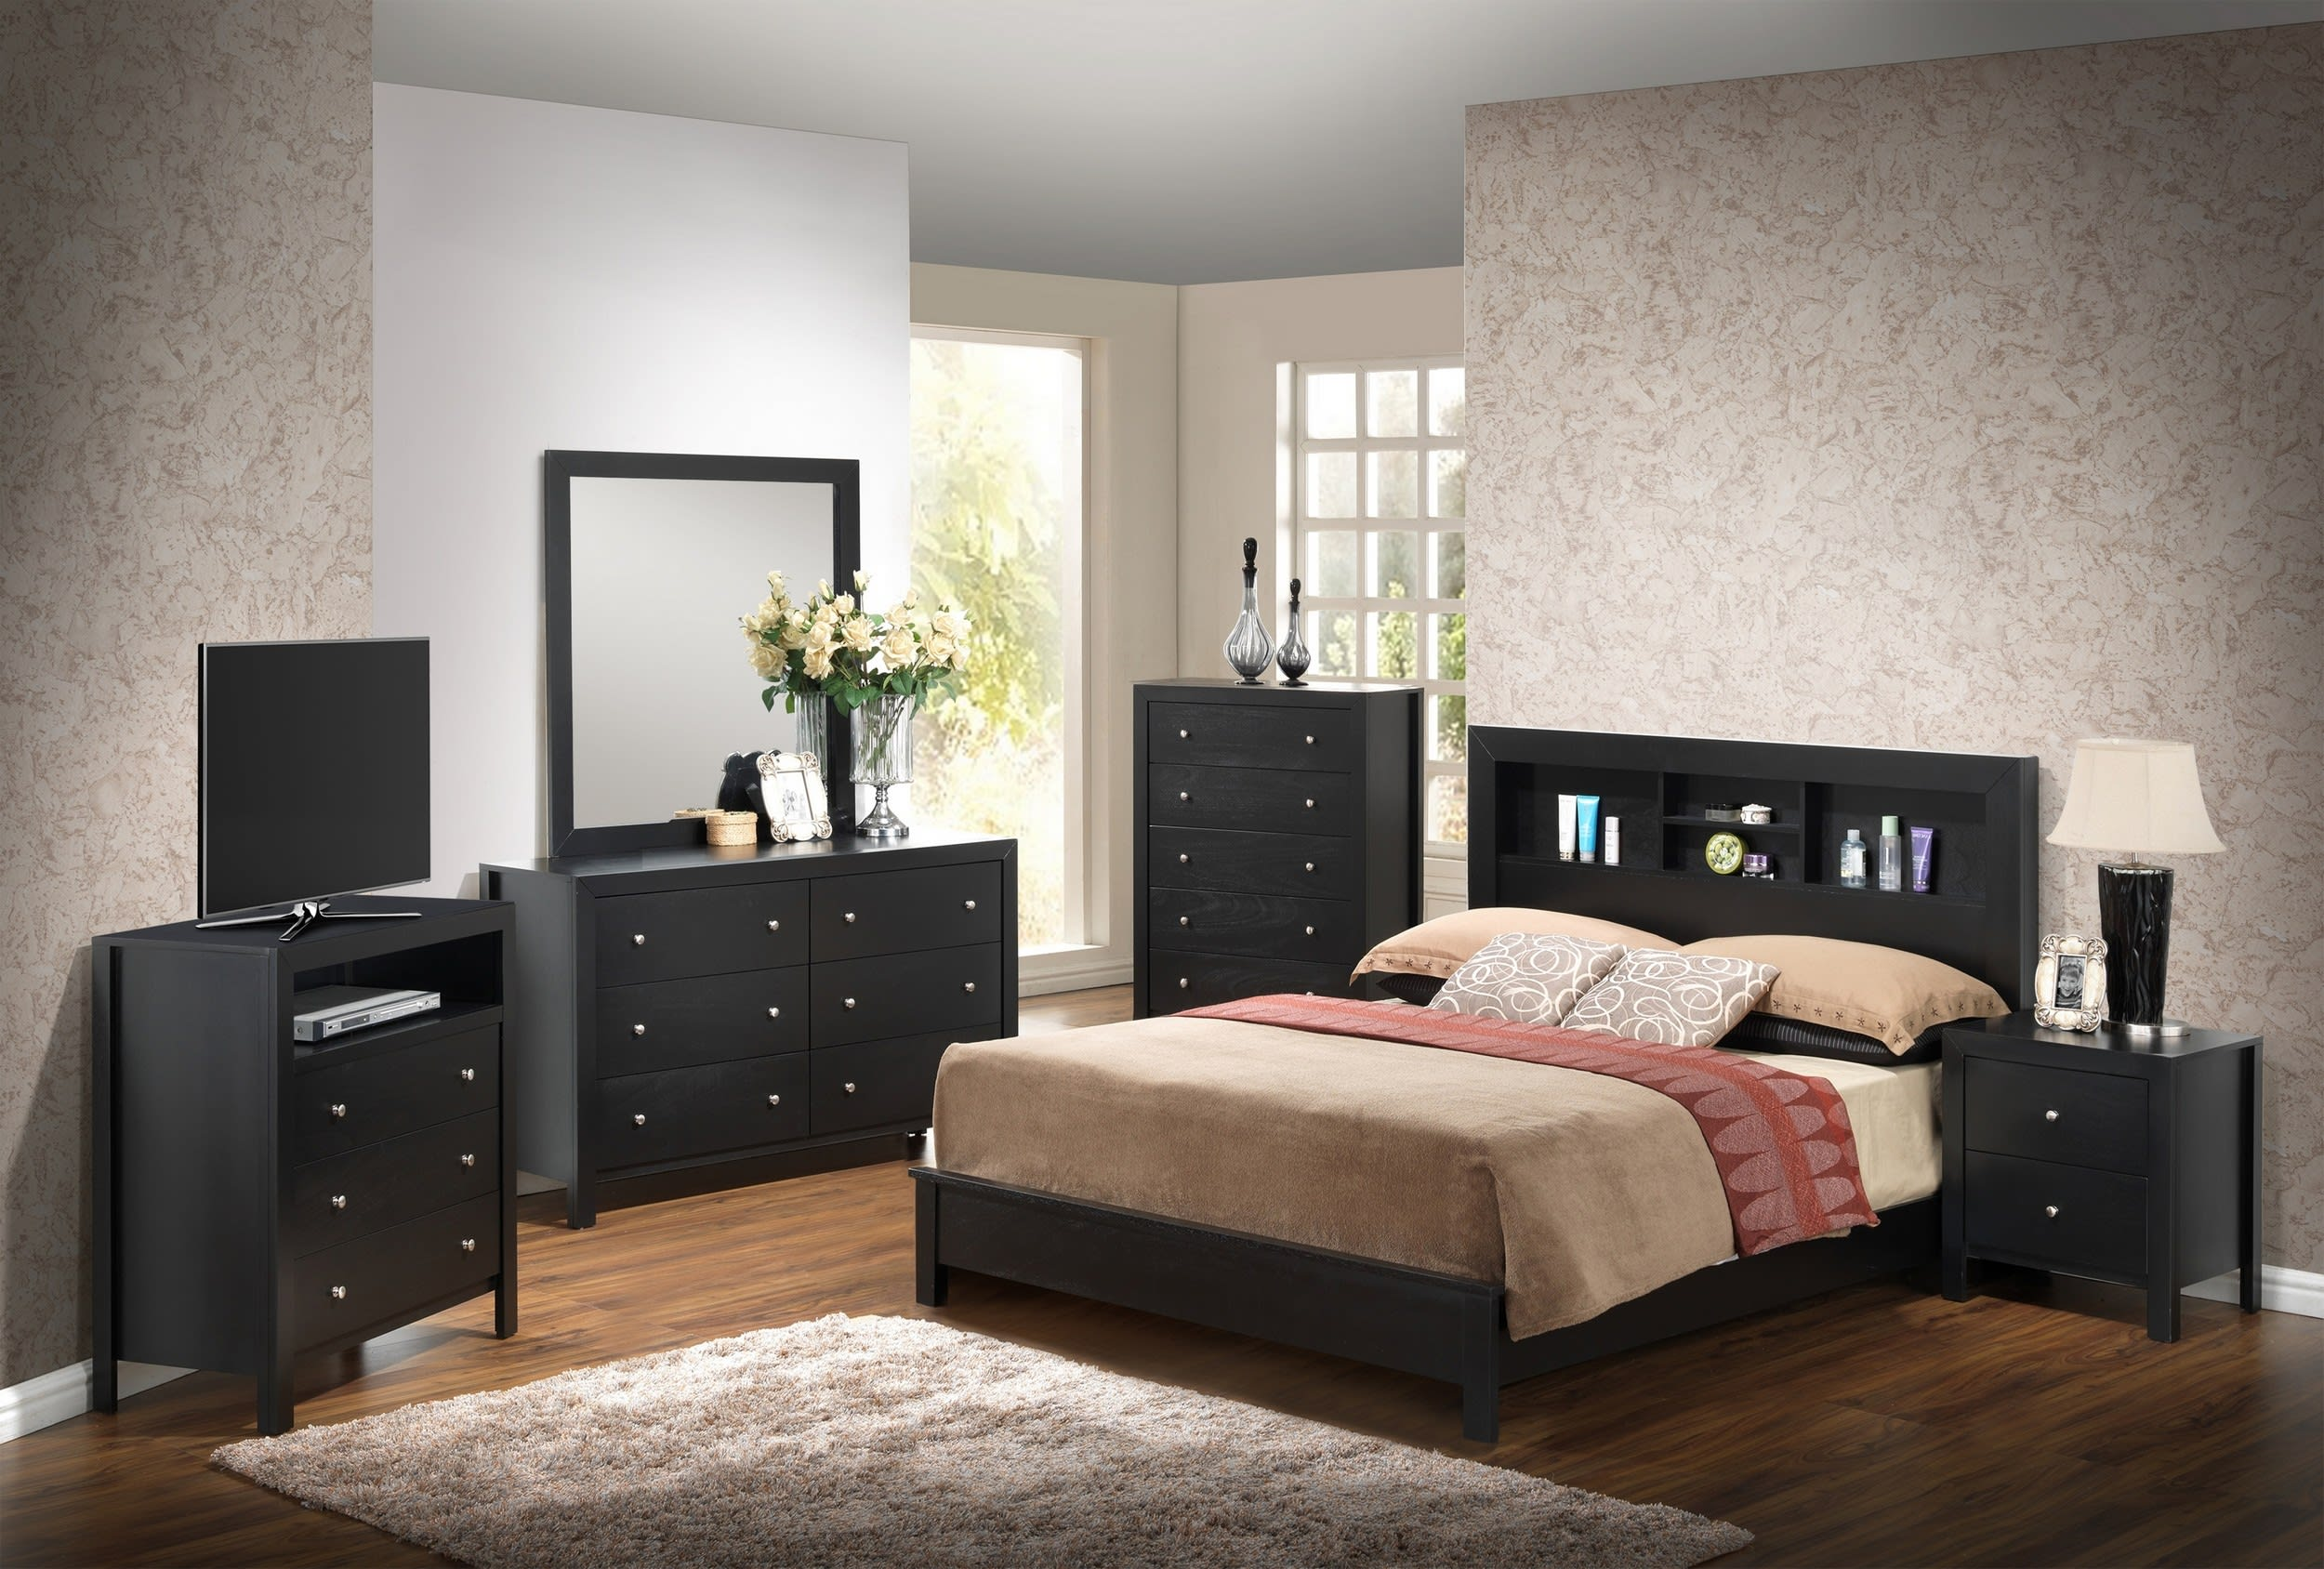 Glory Black Queen 6 Piece Bedroom Set With Bookcase Headboard Reviews Goedekers Com